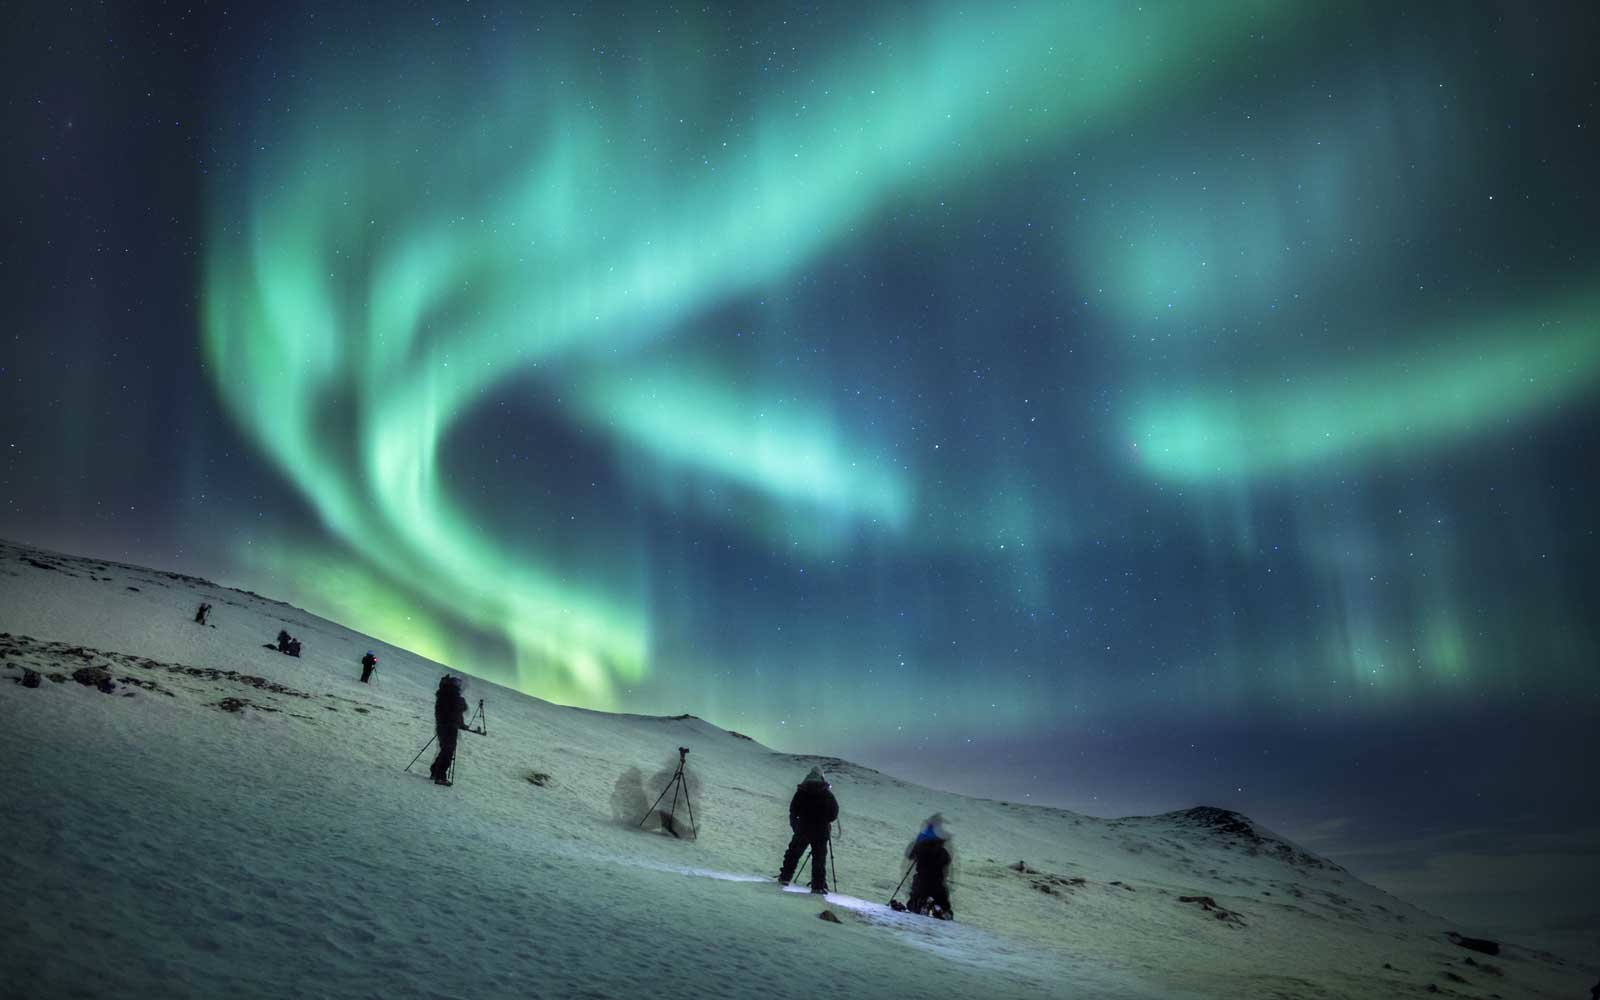 People viewing and photographing the northern lights by the Abisko Sky Station, Lapland, Sweden